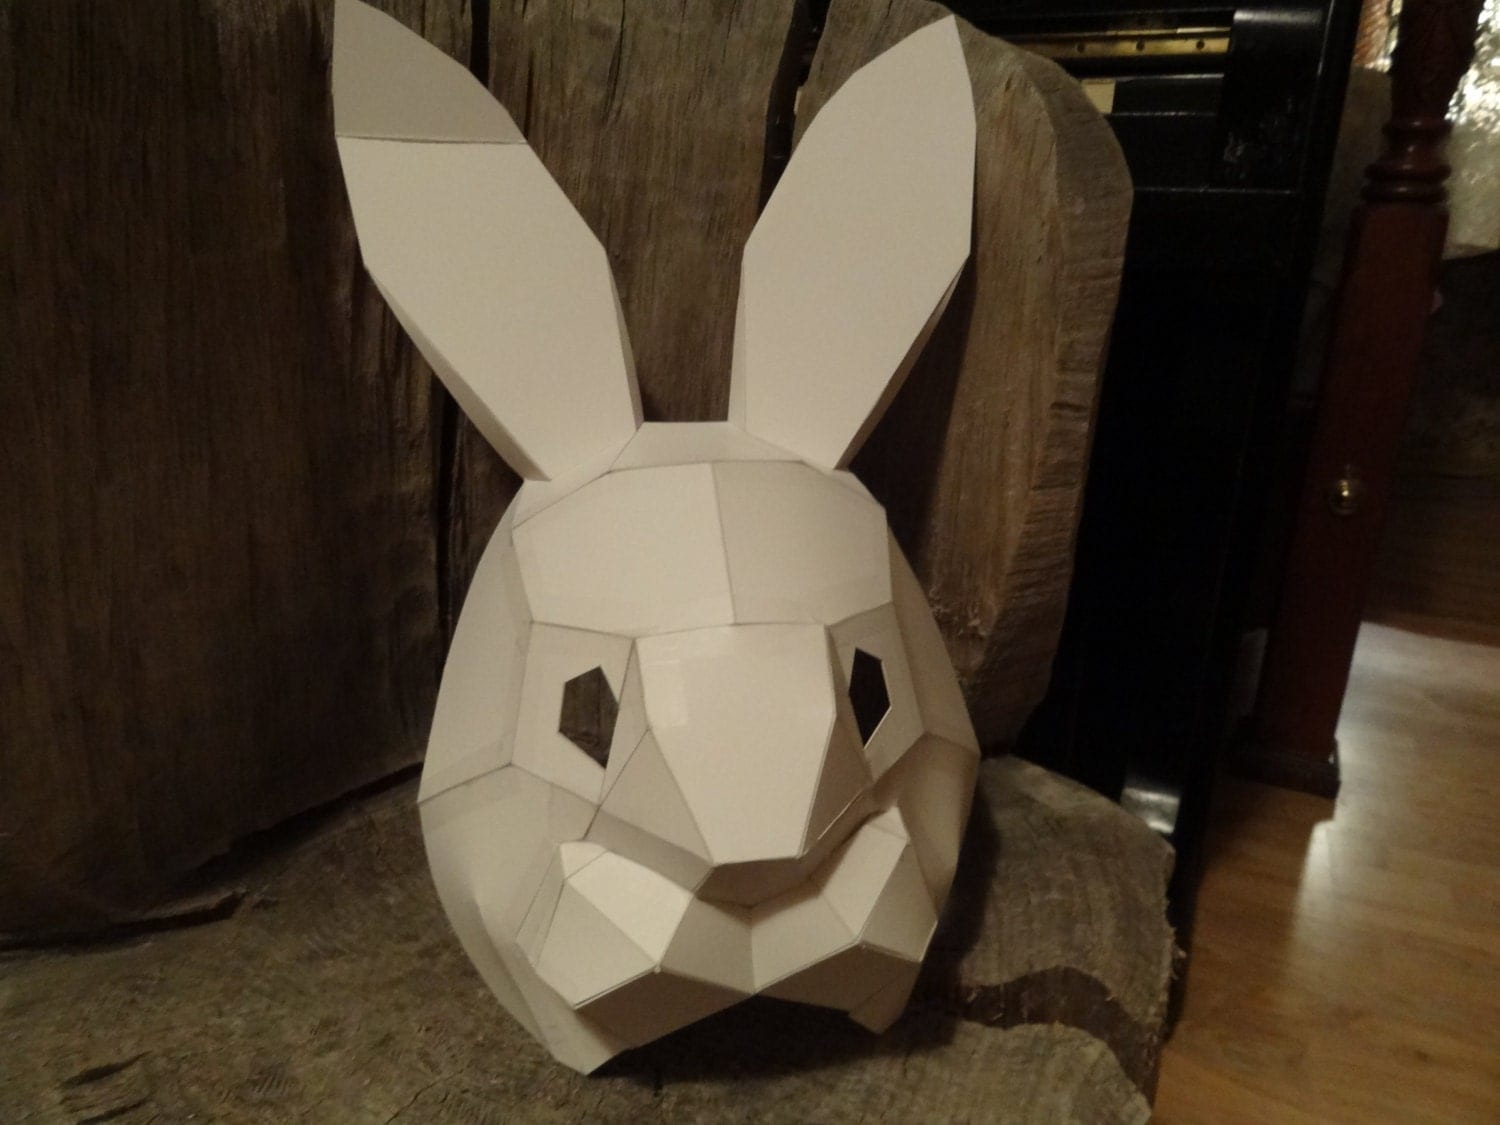 DIY Halloween mask, Make your own Rabbit mask from cardboard ...